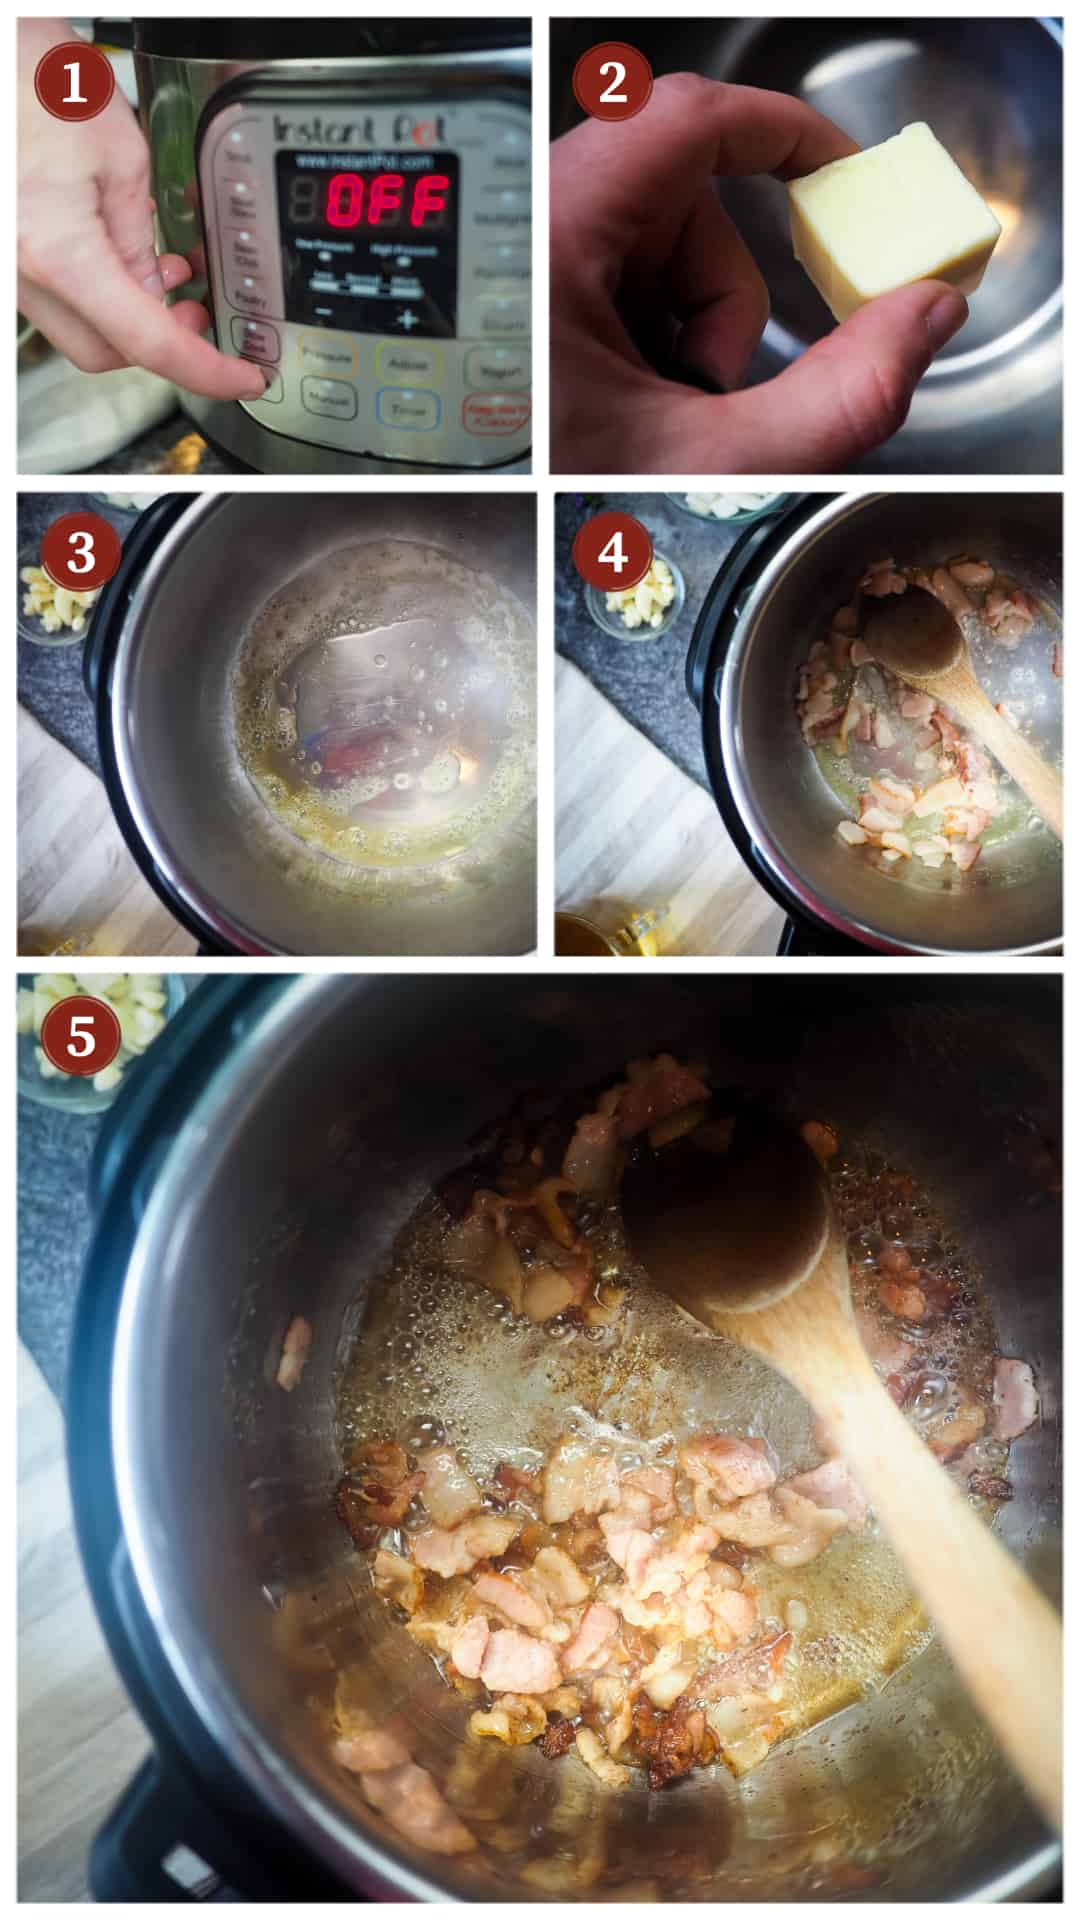 A collage of images showing the process of making southern green beans in an Instant Pot, steps 1 - 5.